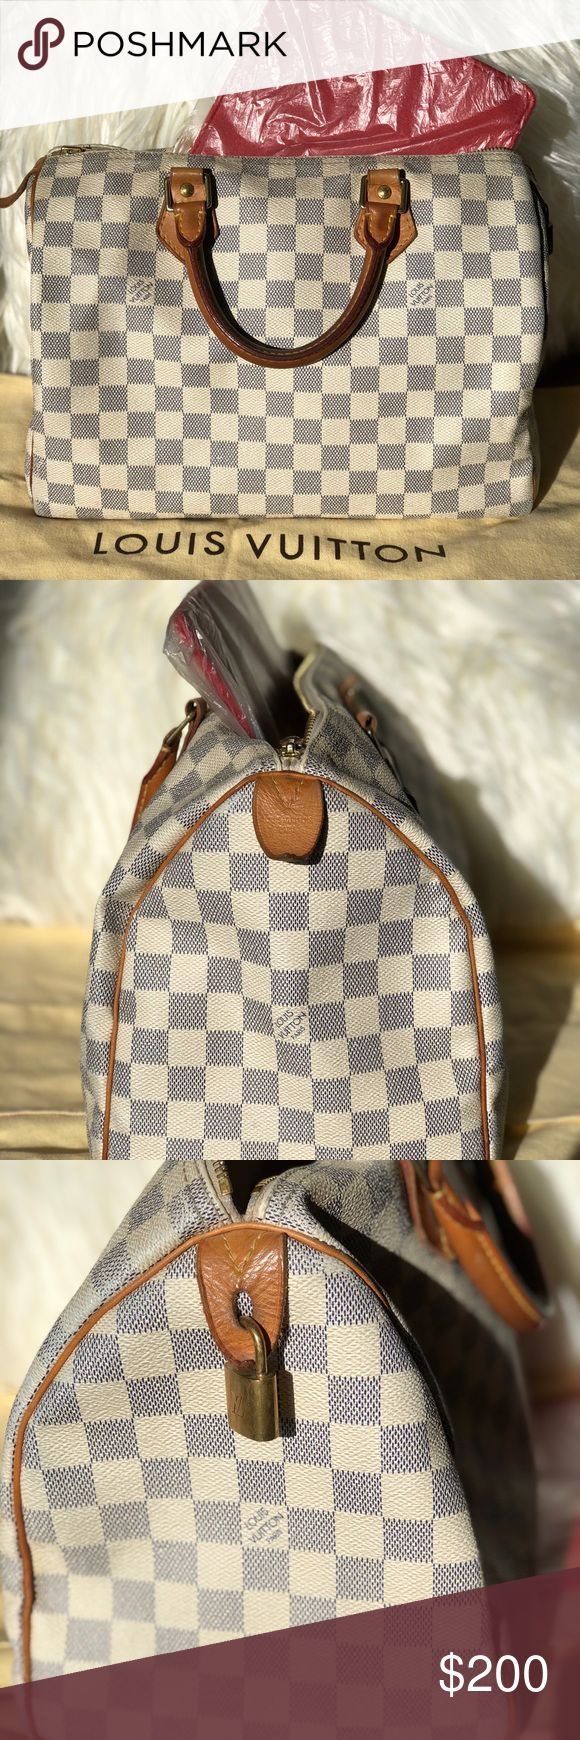 Authentic Louis Vuitton Speedy 30 Damier Azur Heavy used but in good condition. Comes with a bottom insert shaper and the protective bag. I've had it for a long time as you can tell from the aging of the handles. Louis Vuitton Bags Mini Bags